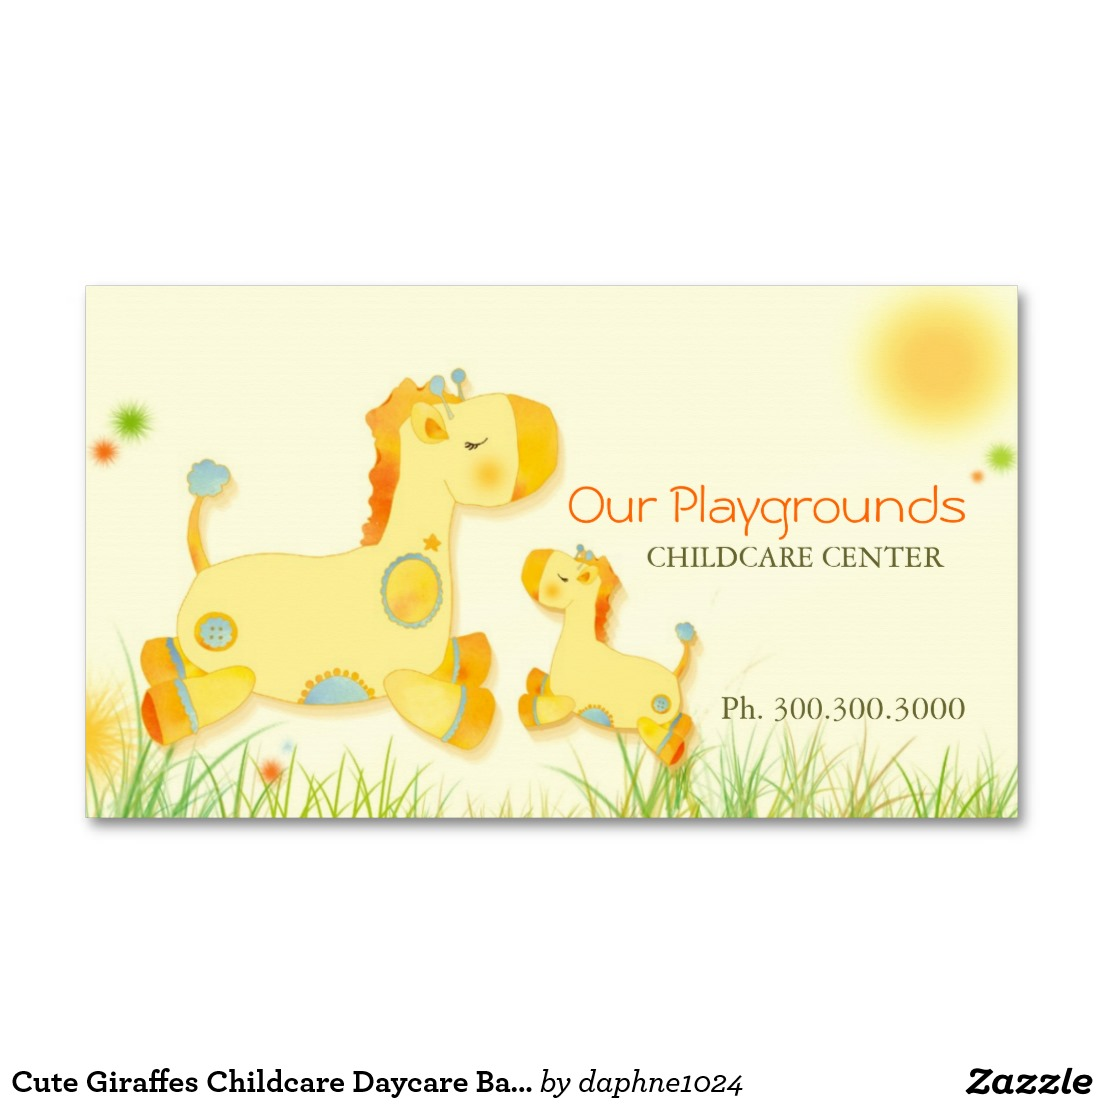 Cute Baby Giraffes Childcare Daycare Center Business Card.